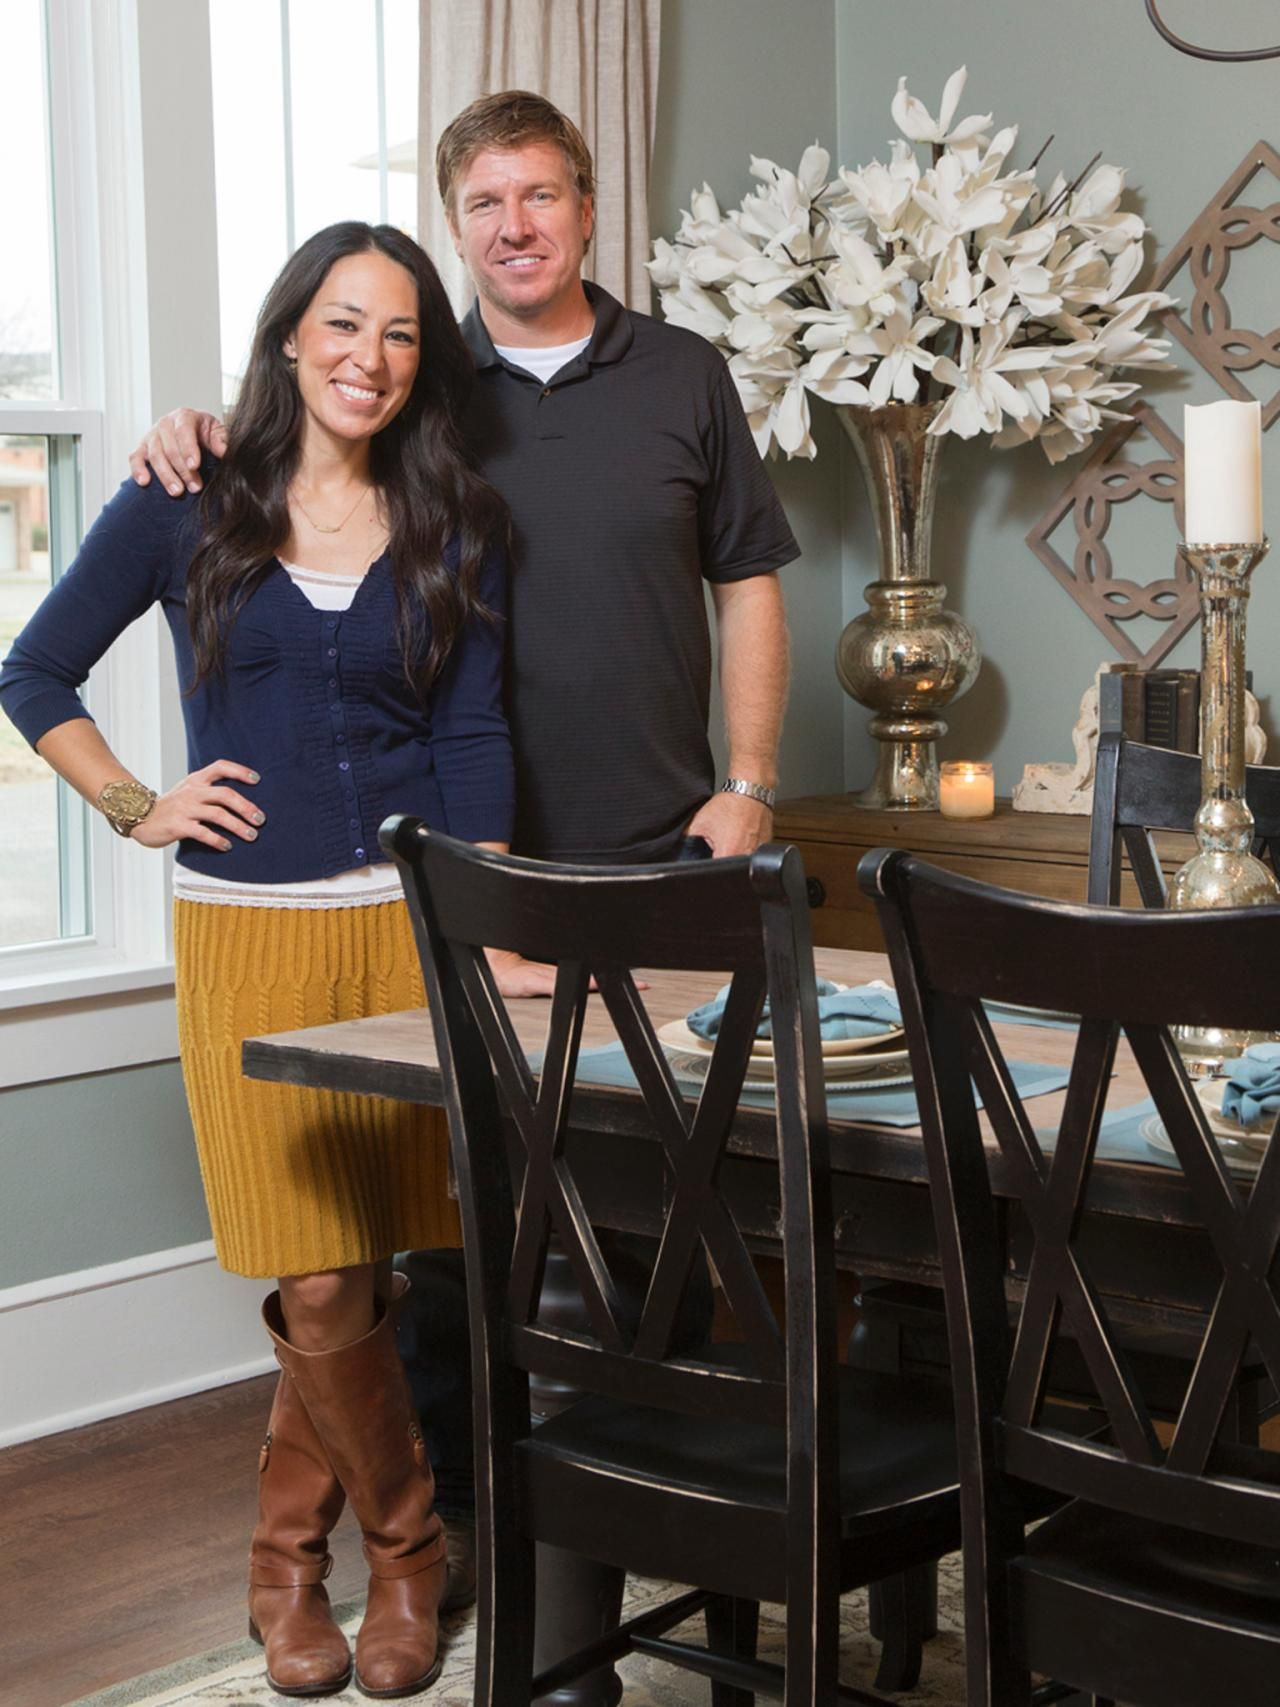 Hgtv fixer upper kitchen tables - A 1937 Craftsman Home Gets A Makeover Fixer Upper Style Hgtv S Fixer Upper